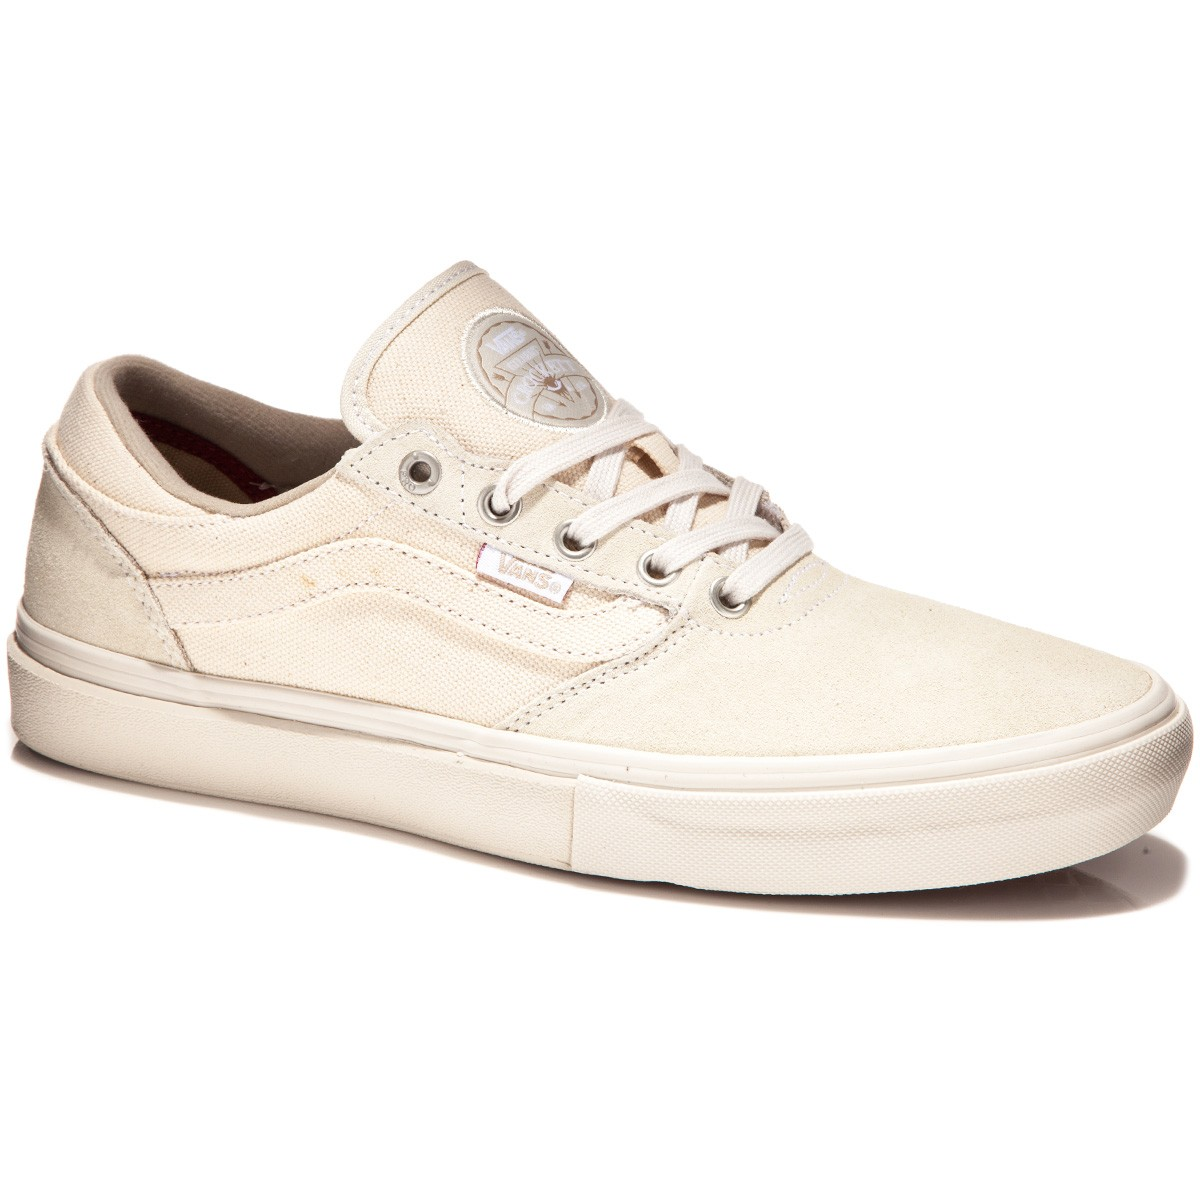 Vans Gilbert Crockett Pro Shoes - Natural Canvas - 8.0